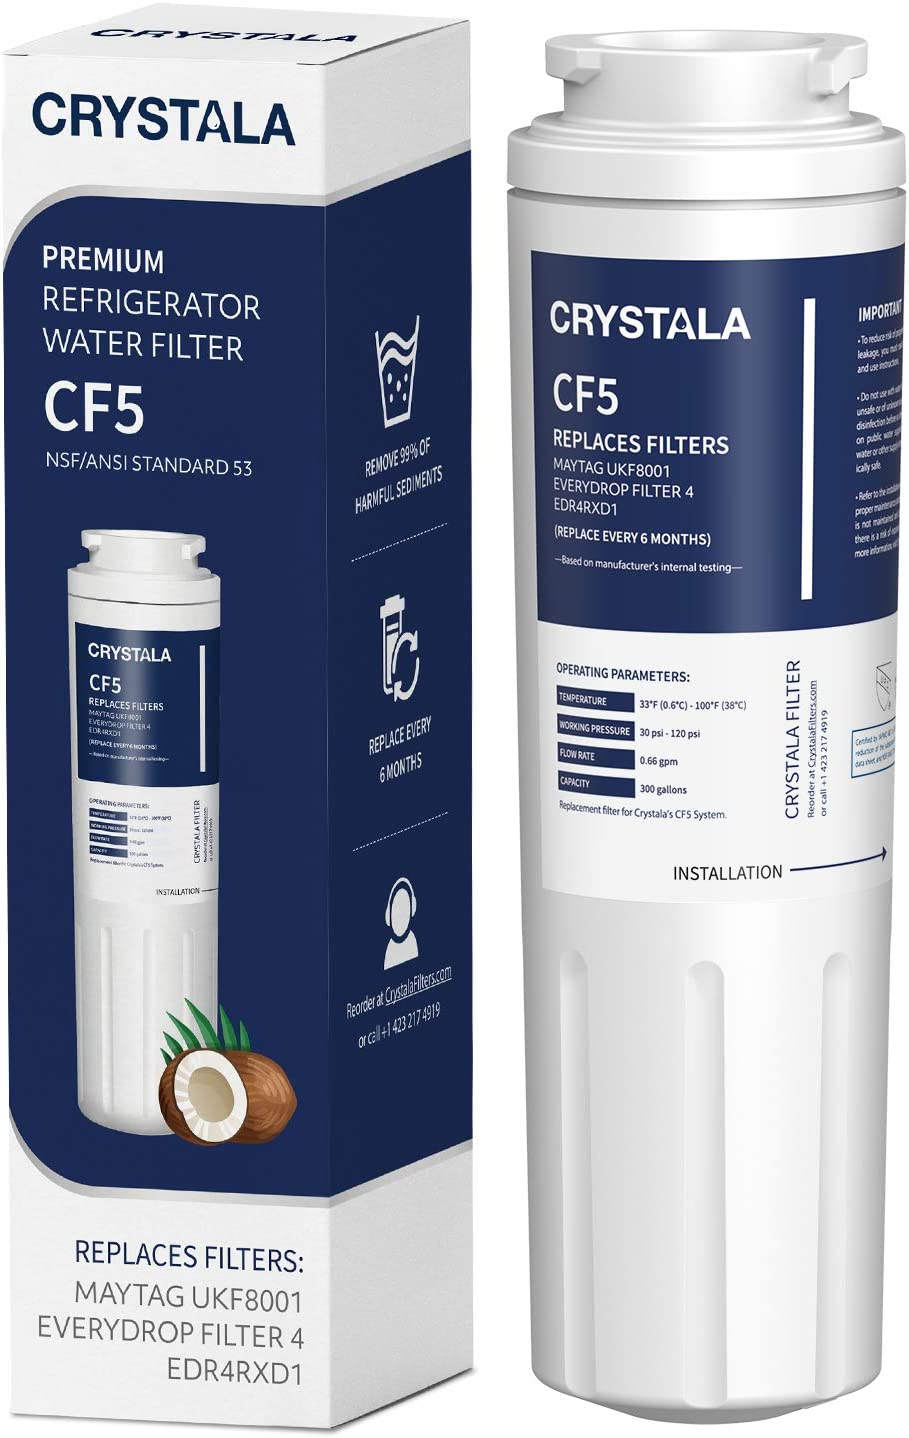 UKF8001 Water Filter, Compatible with Refrigerator Water Filter Whirlpool 4396395, Filter 4, Maytag UKF8001, EDR4RXD1, UKF8001AXX, UKF8001P, Puriclean II, 469006, by Crystala Filters (Pack of 1)